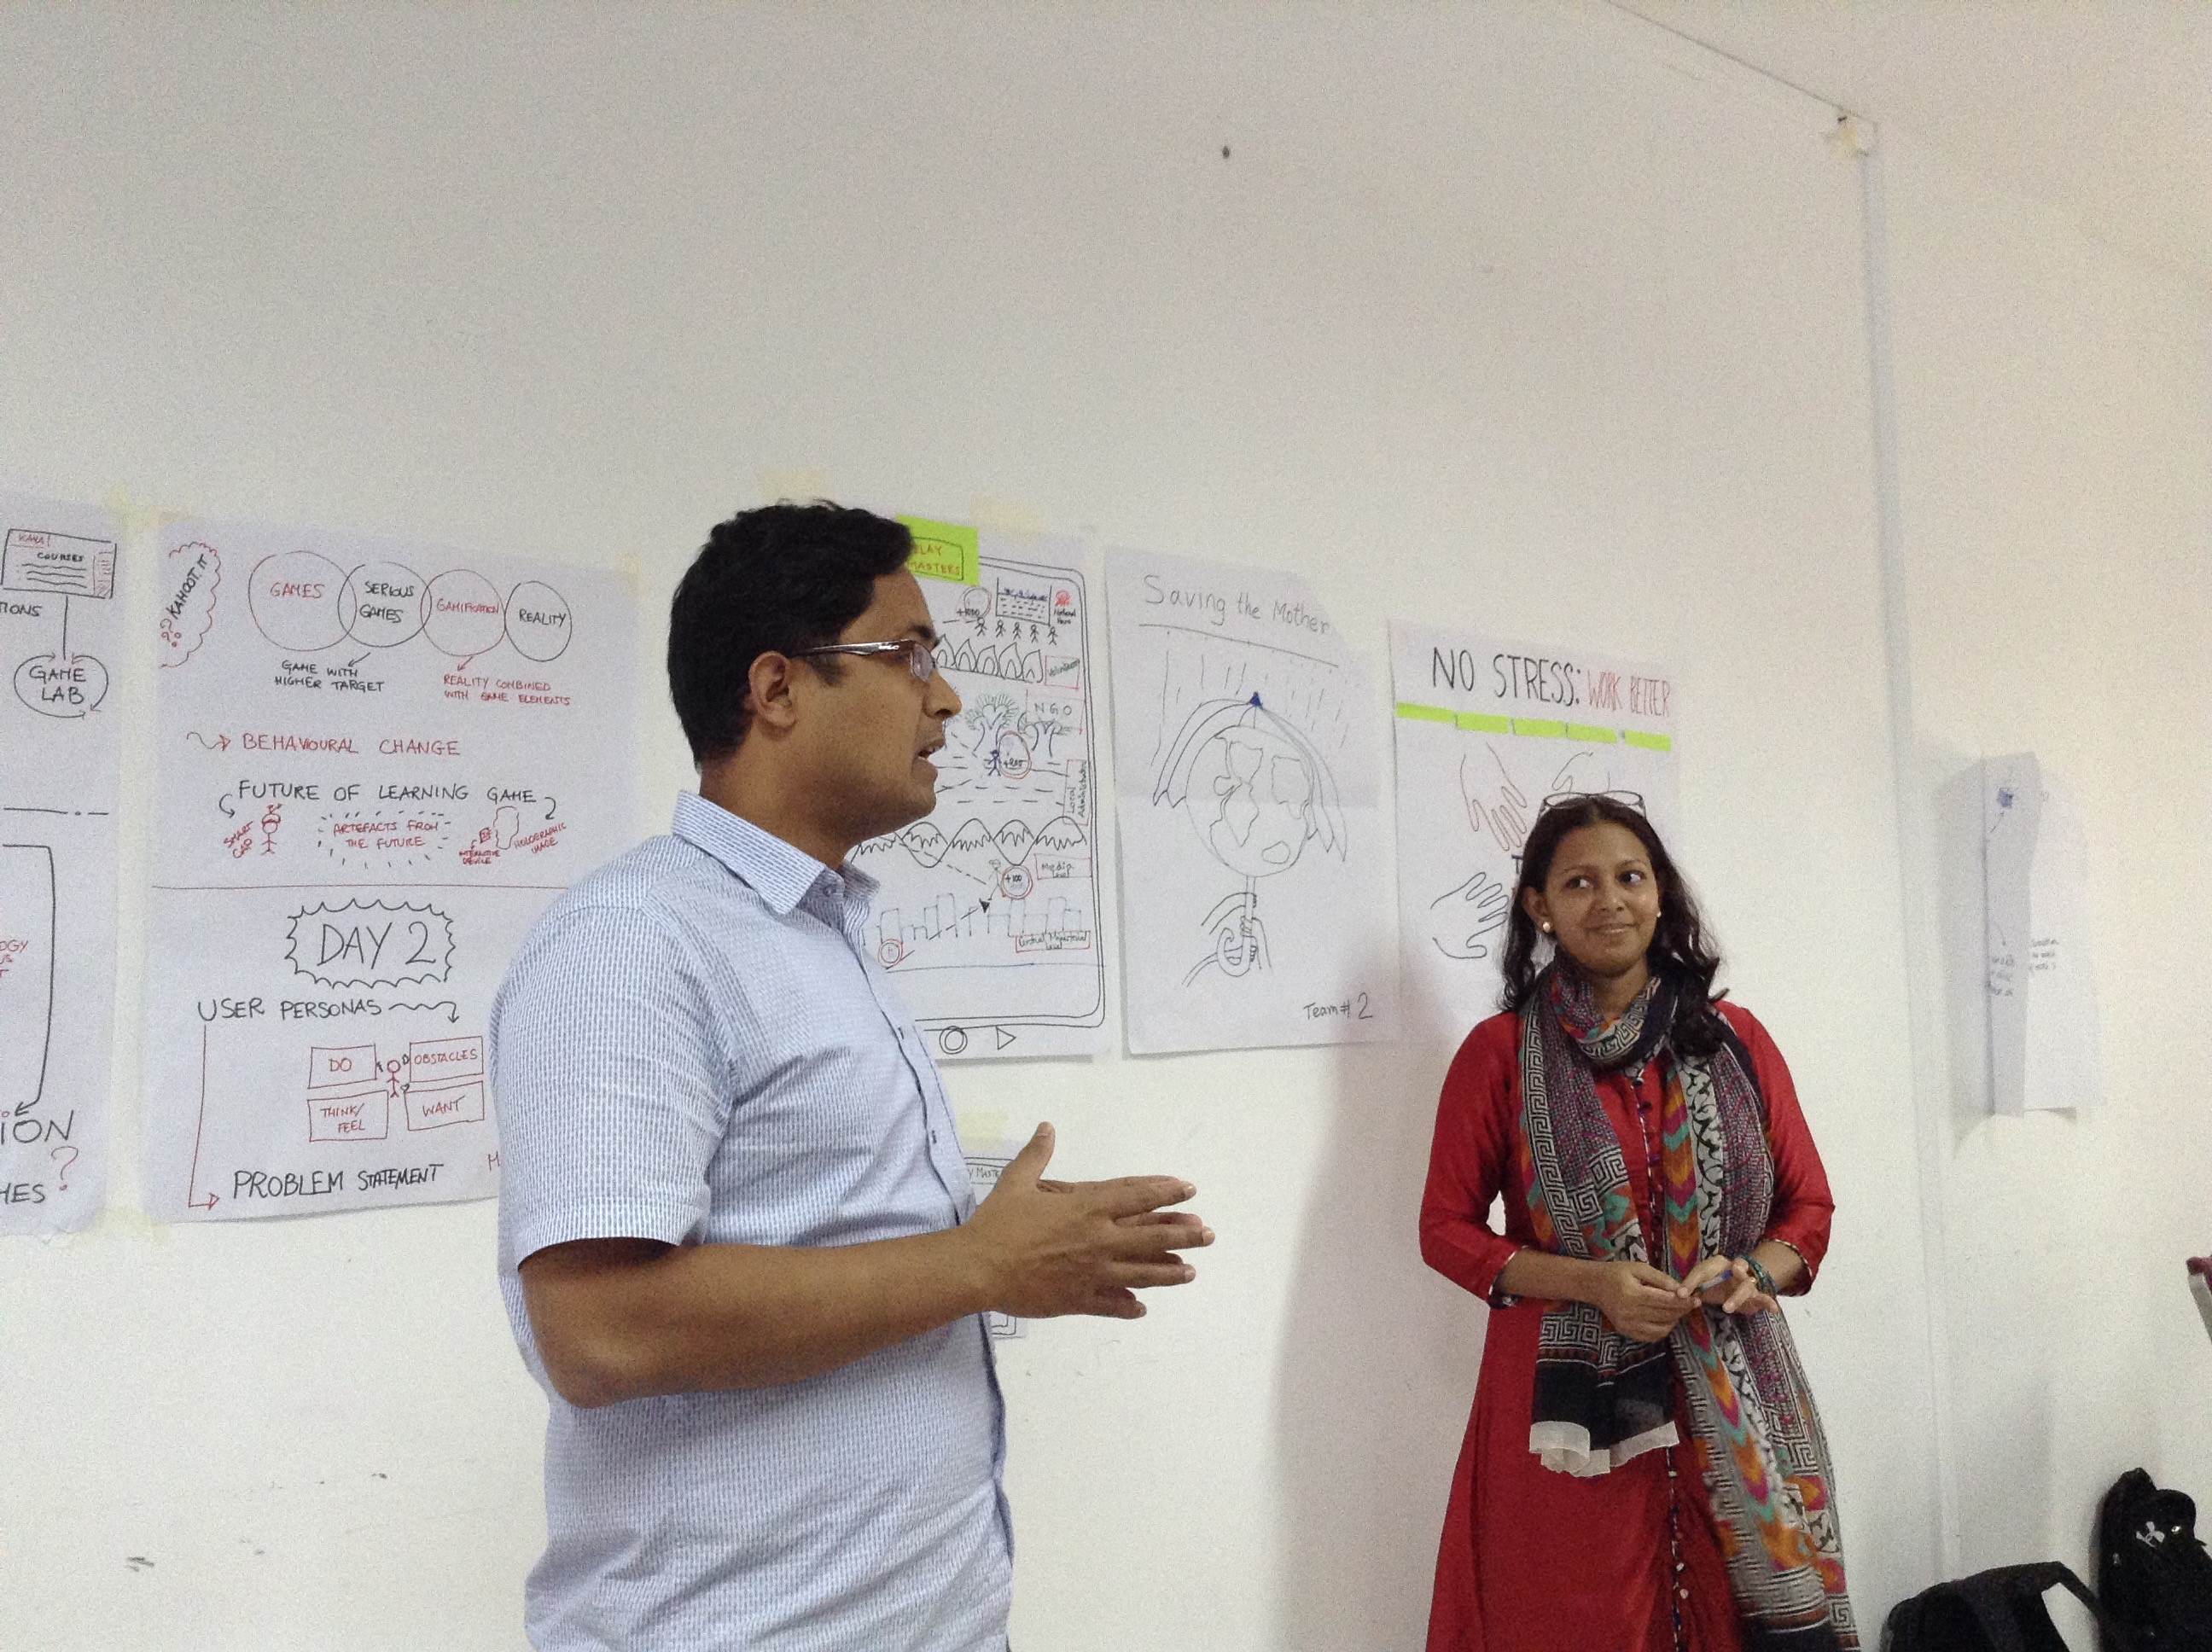 Learning And Innovation For Risk Reduction And Disaster Management In Bangladesh